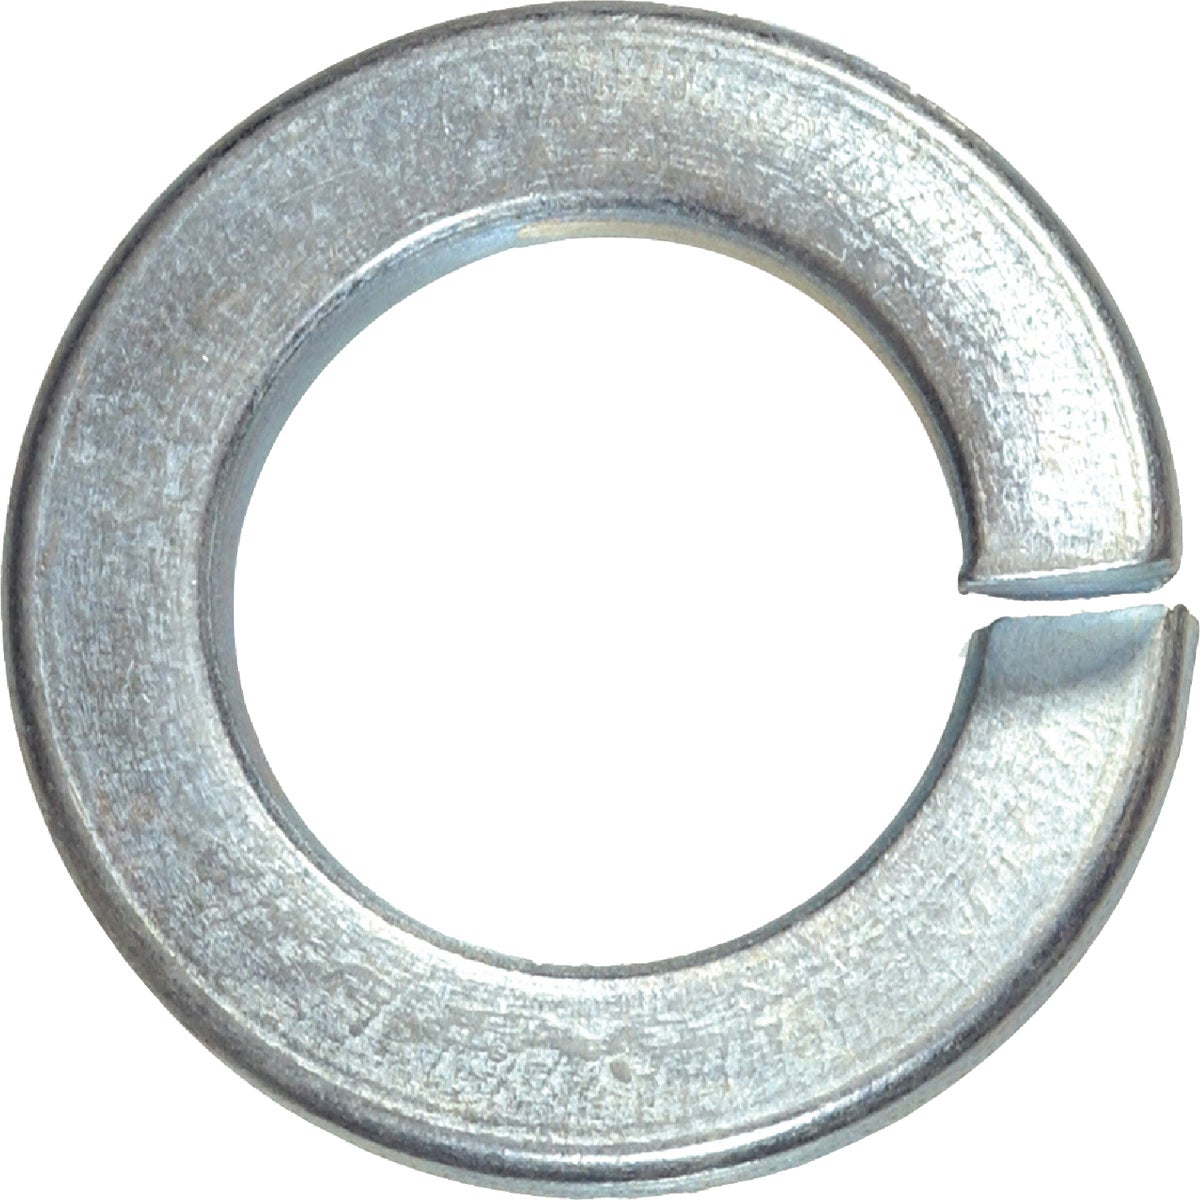 100PC #10 LOCK WASHER - 300015 by Hillman Fastener